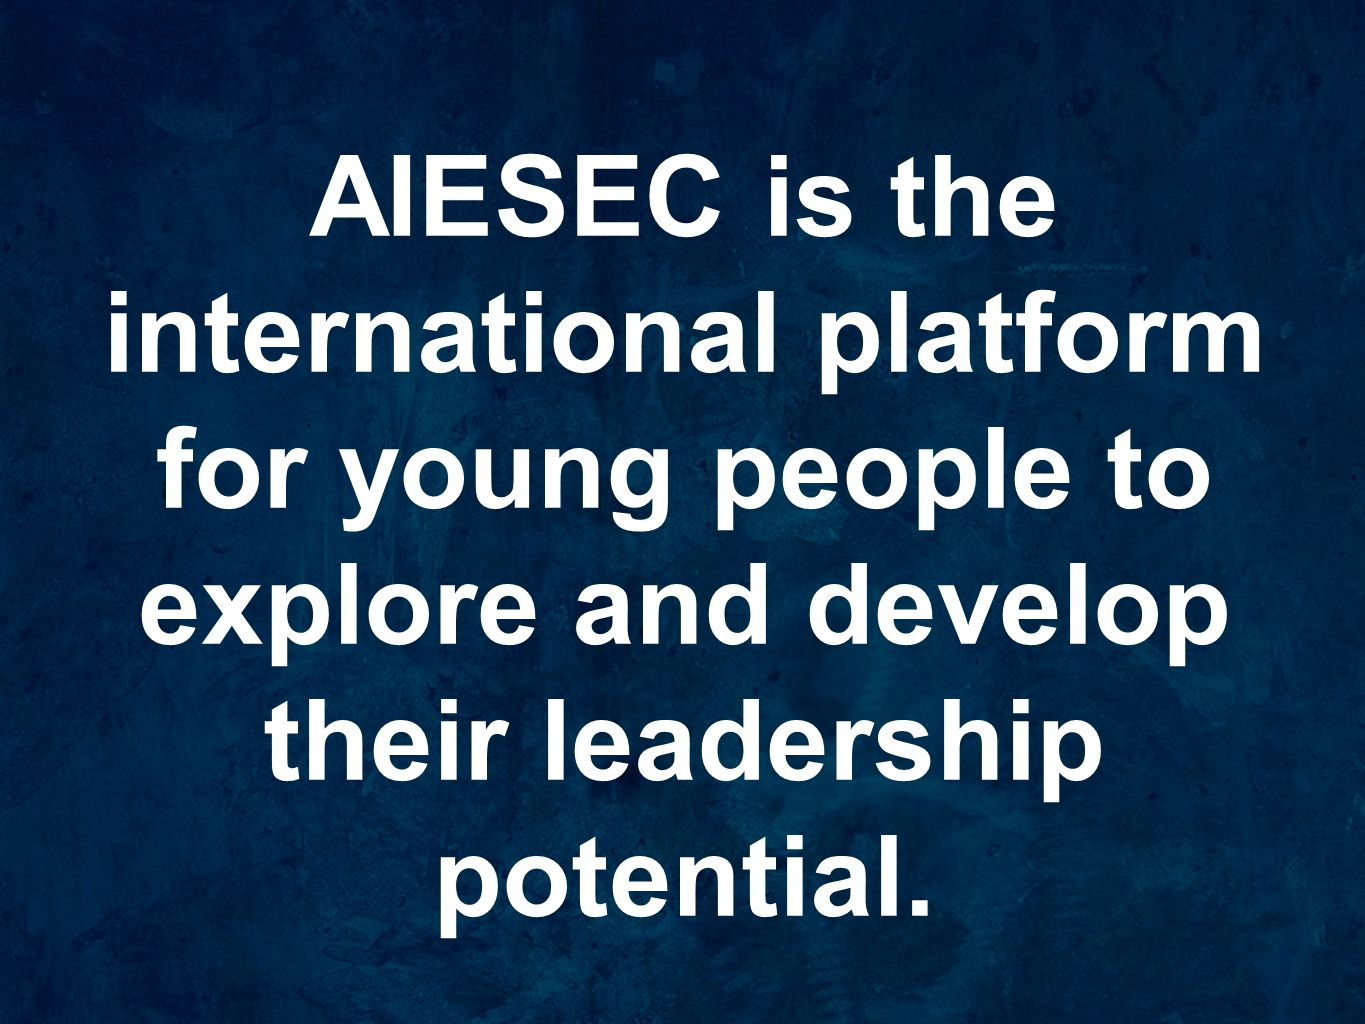 AIESEC is the international platform for young people to explore and develop their leadership potential.